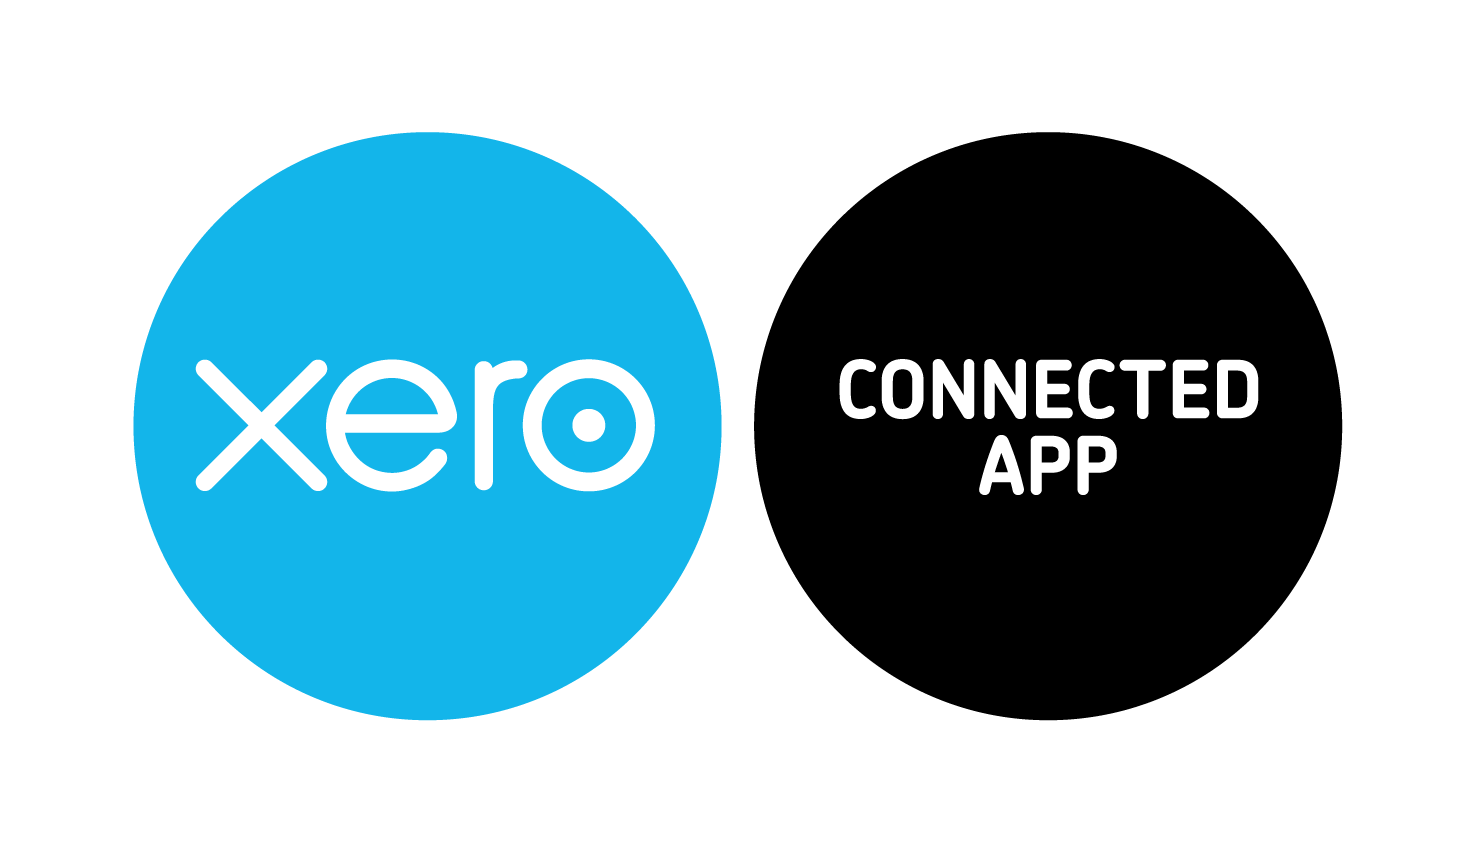 Connected Apps